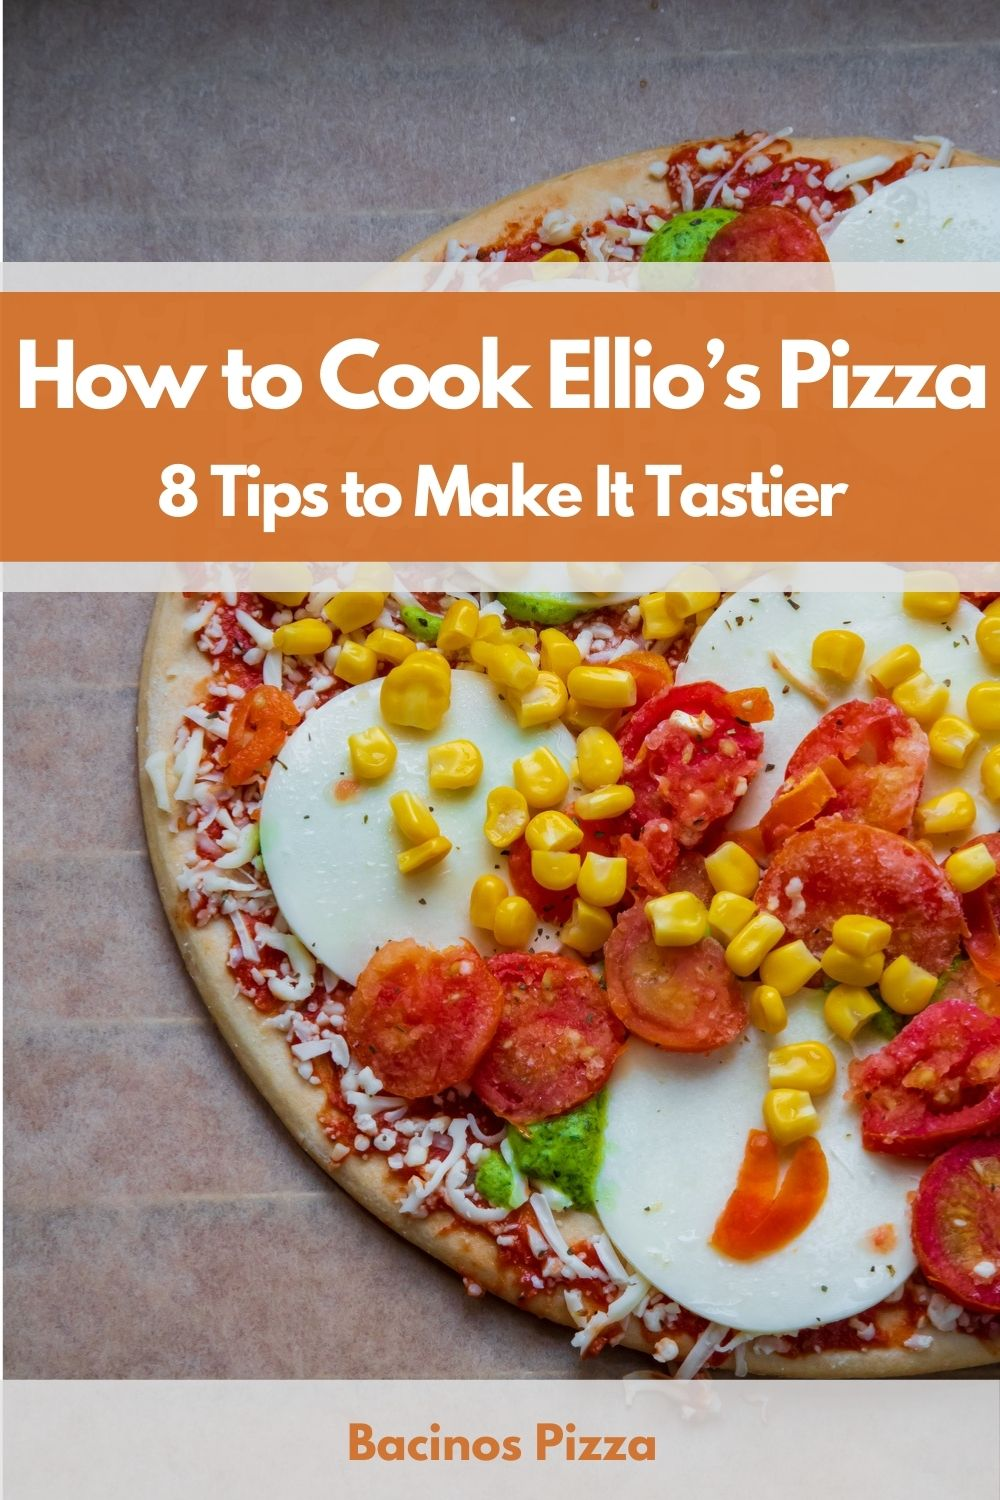 How to Cook Ellio's Pizza (8 Tips to Make It Tastier) pin 2